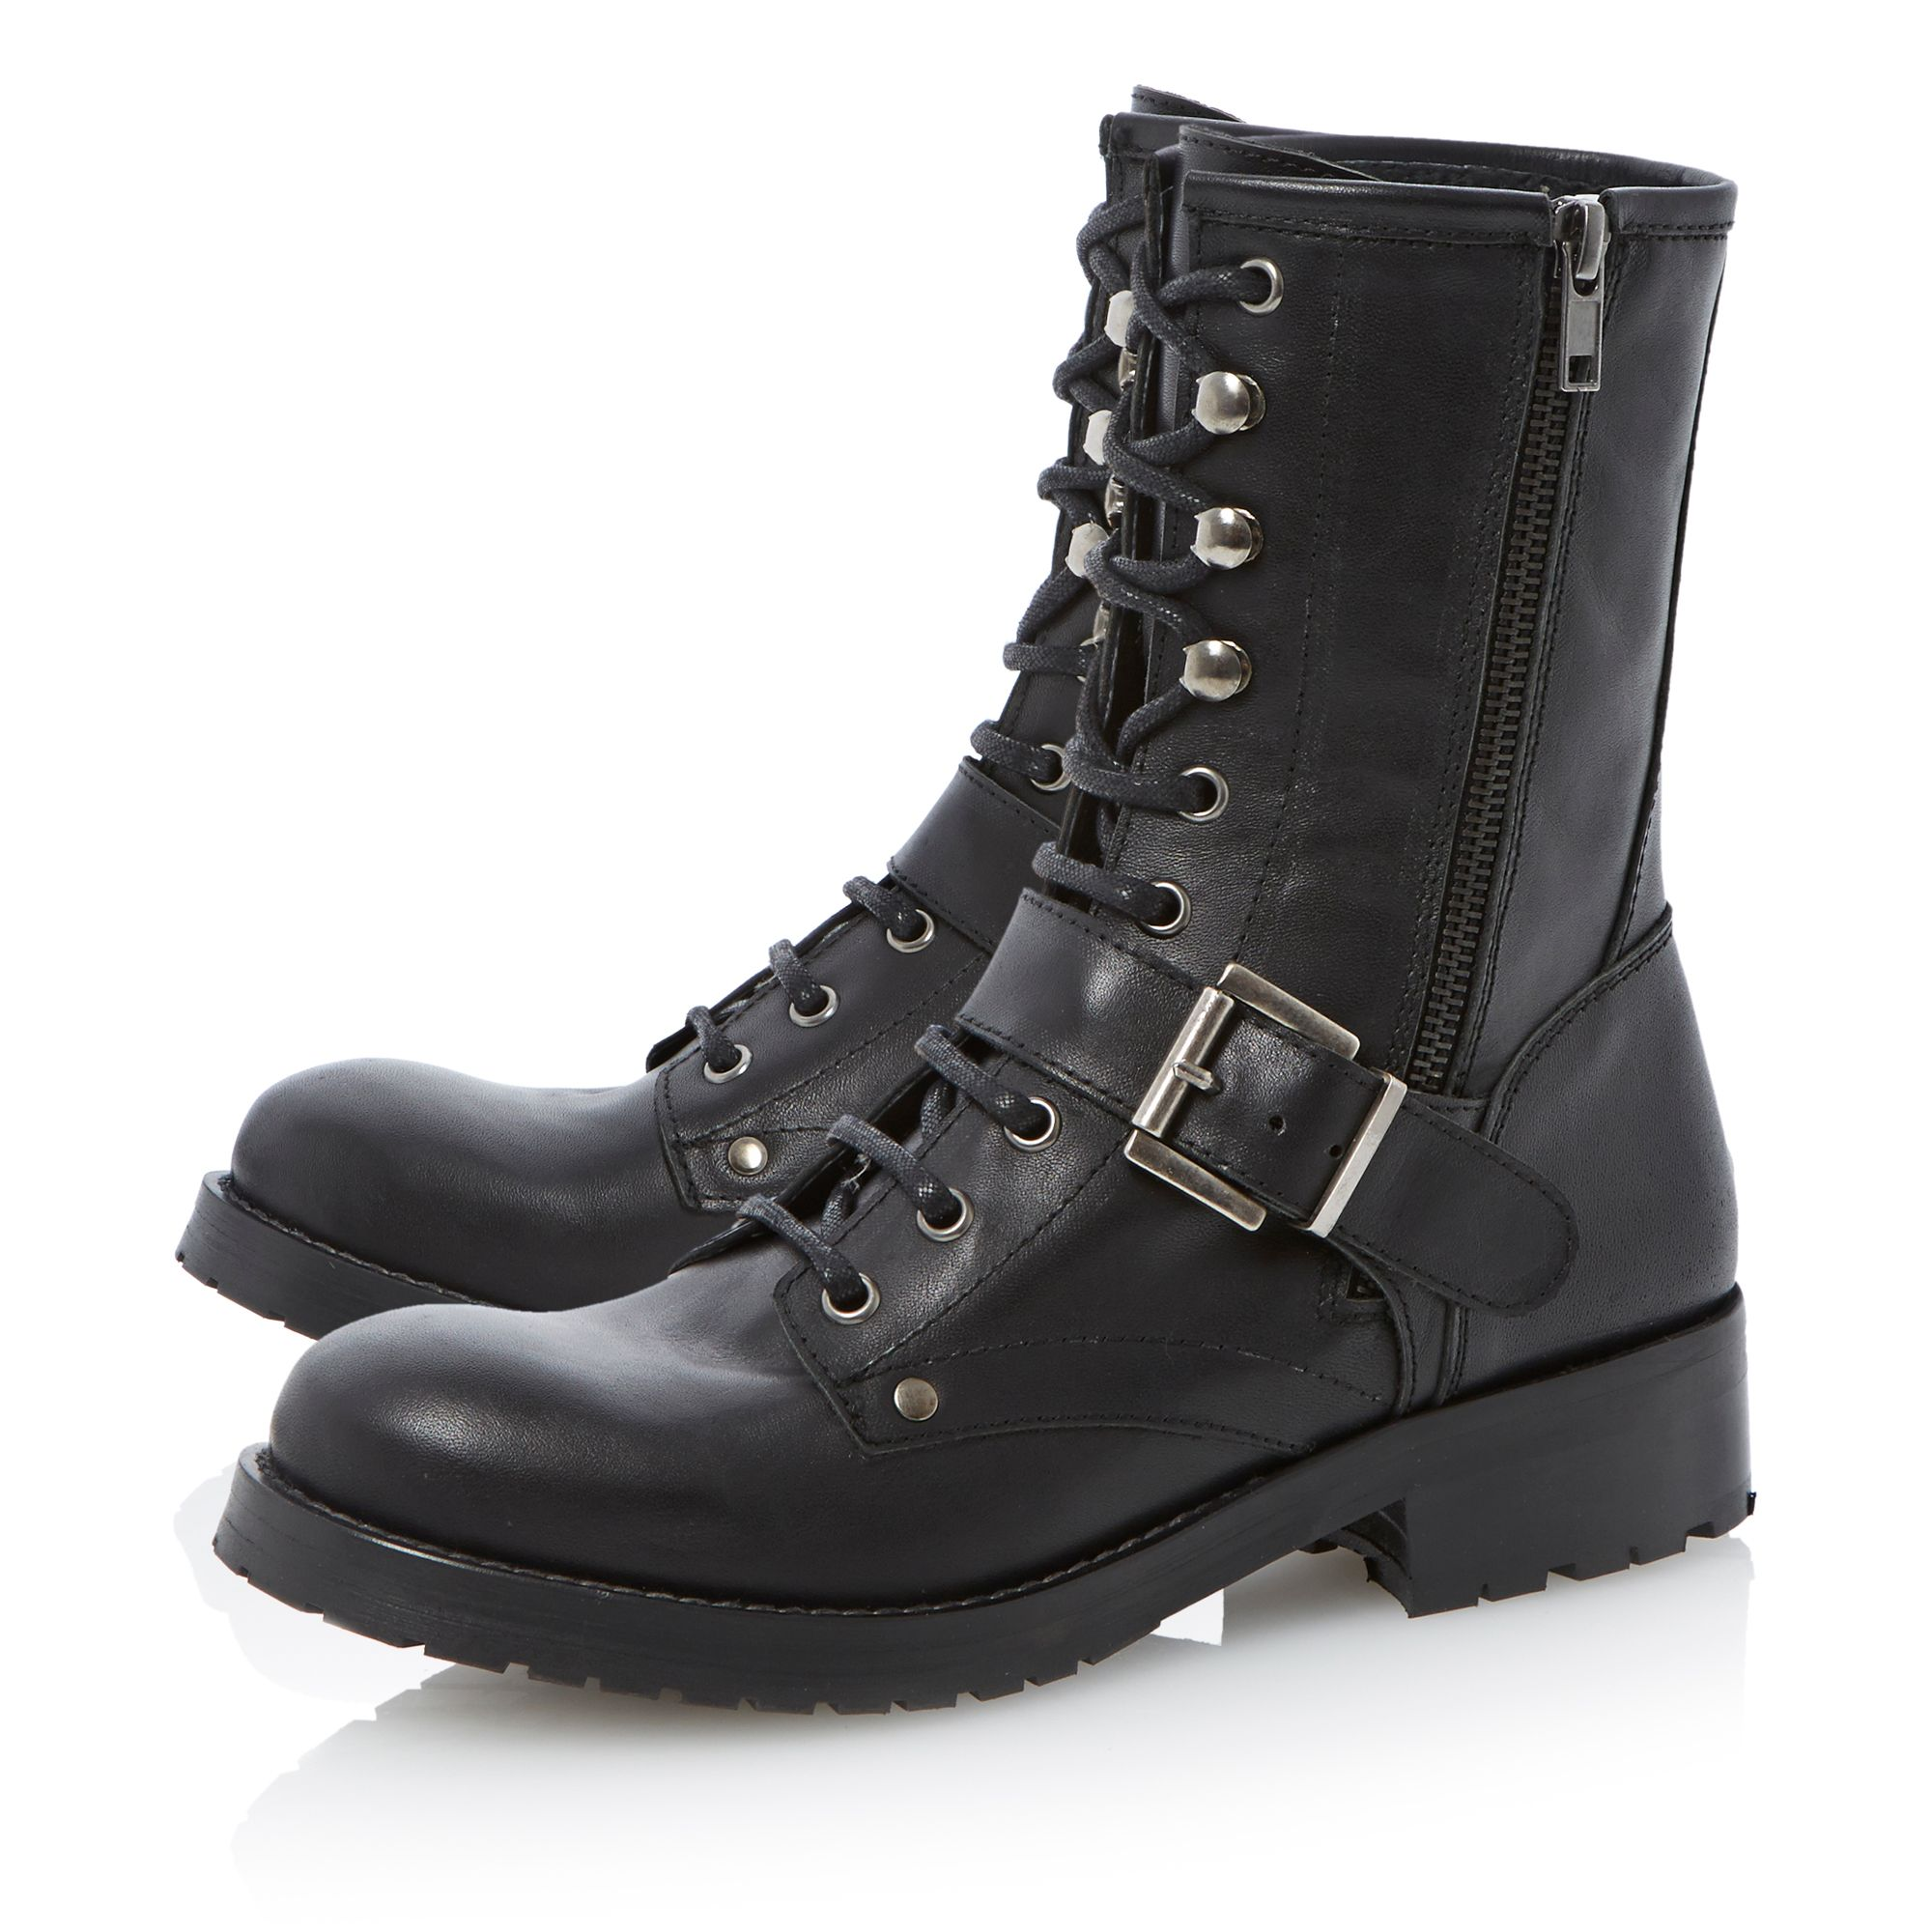 Rangle heavy cleated worker boots